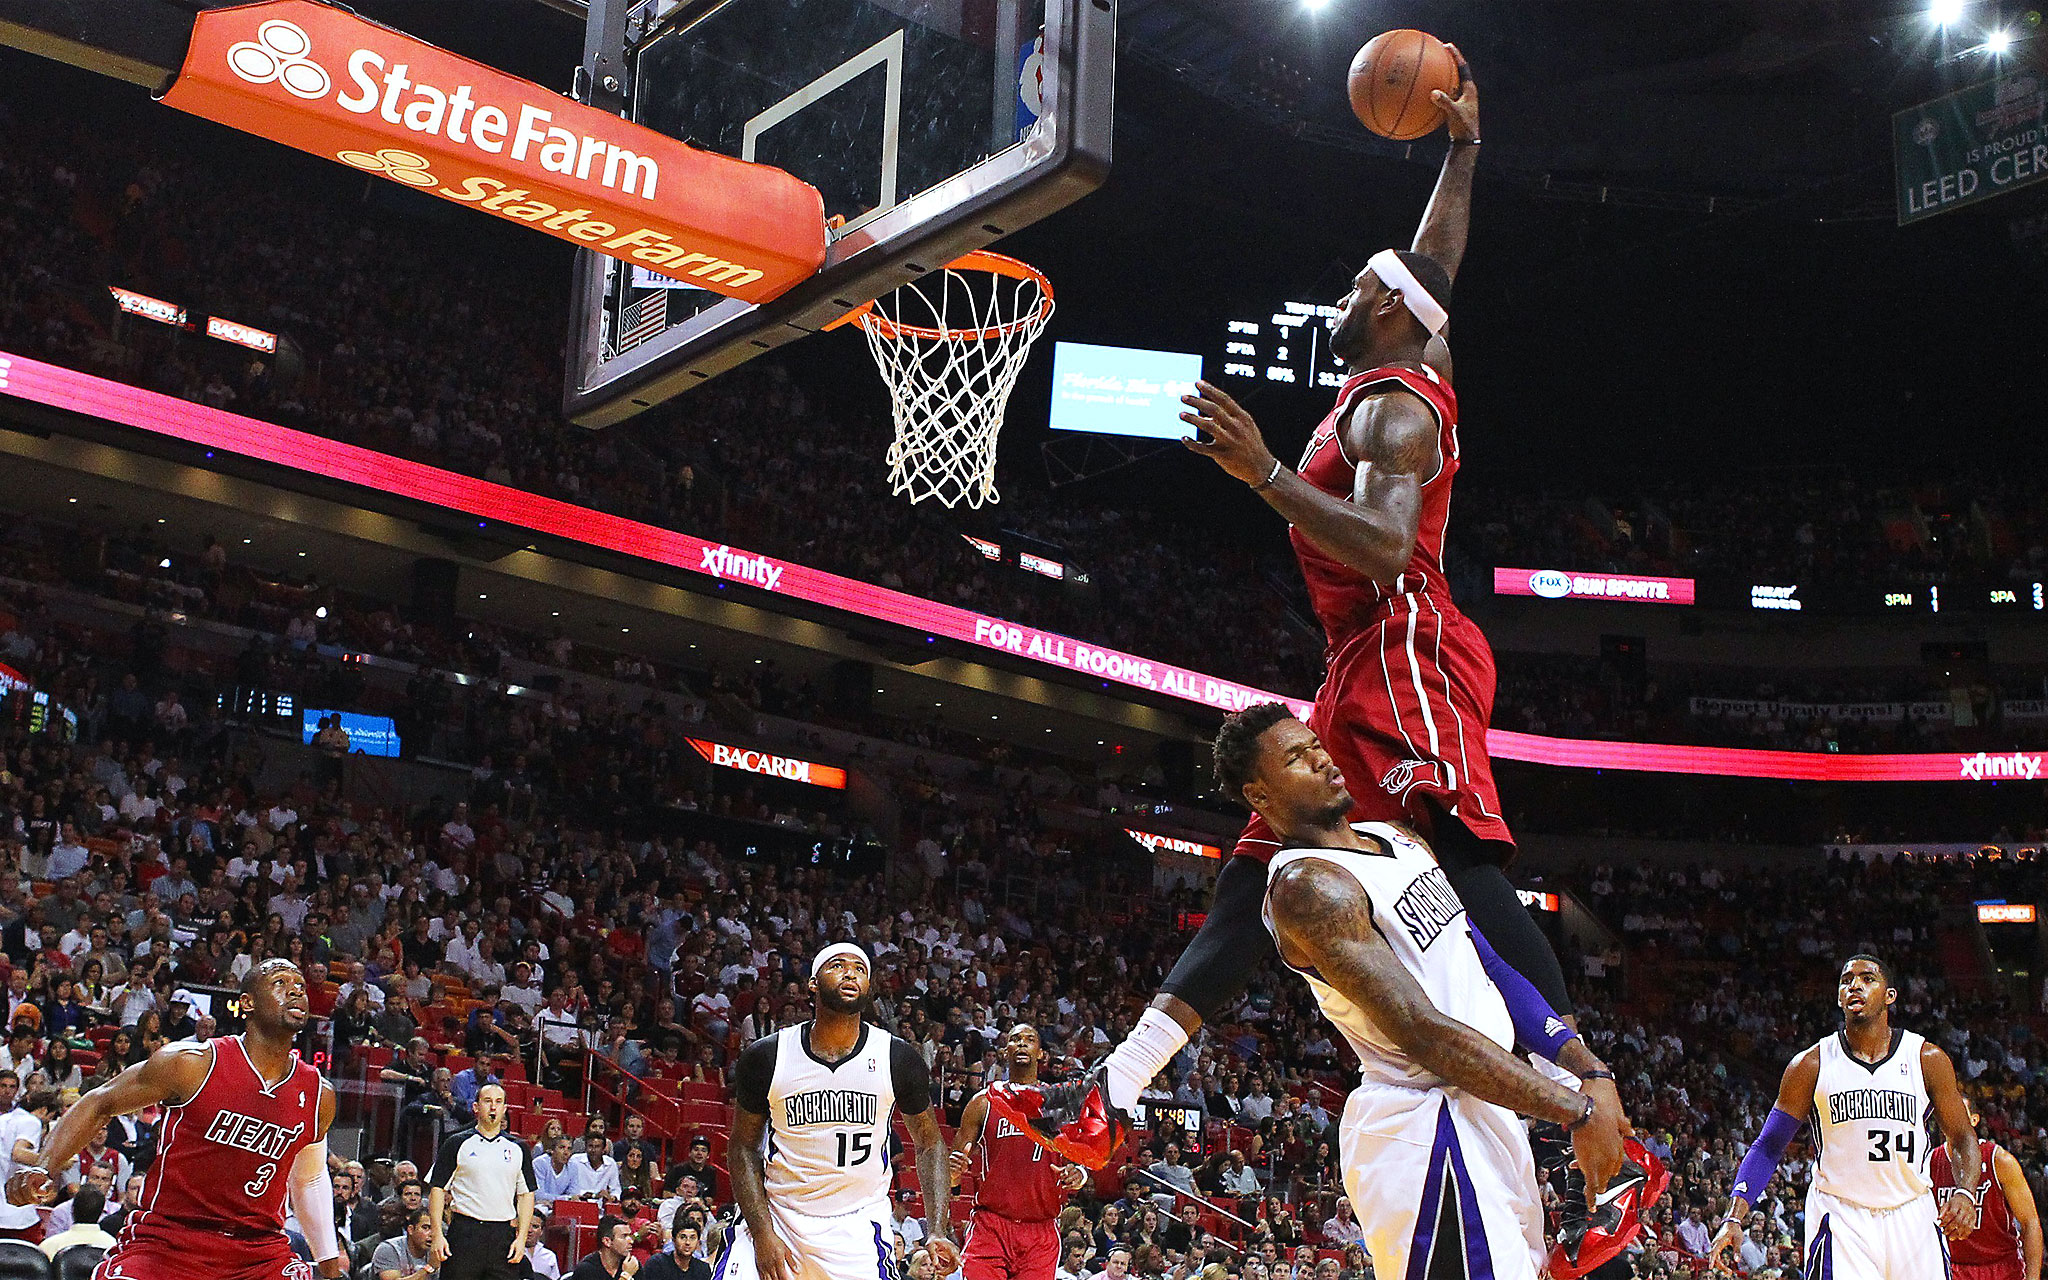 Miami Heat forward LeBron James goes in for a dunk against Sacramento Kings guard Ben McLemore during the first quarter at the AmericanAirlines Arena in Miami on Friday, Dec. 20, 2013. (David Santiago/El Nuevo Herald/MCT)